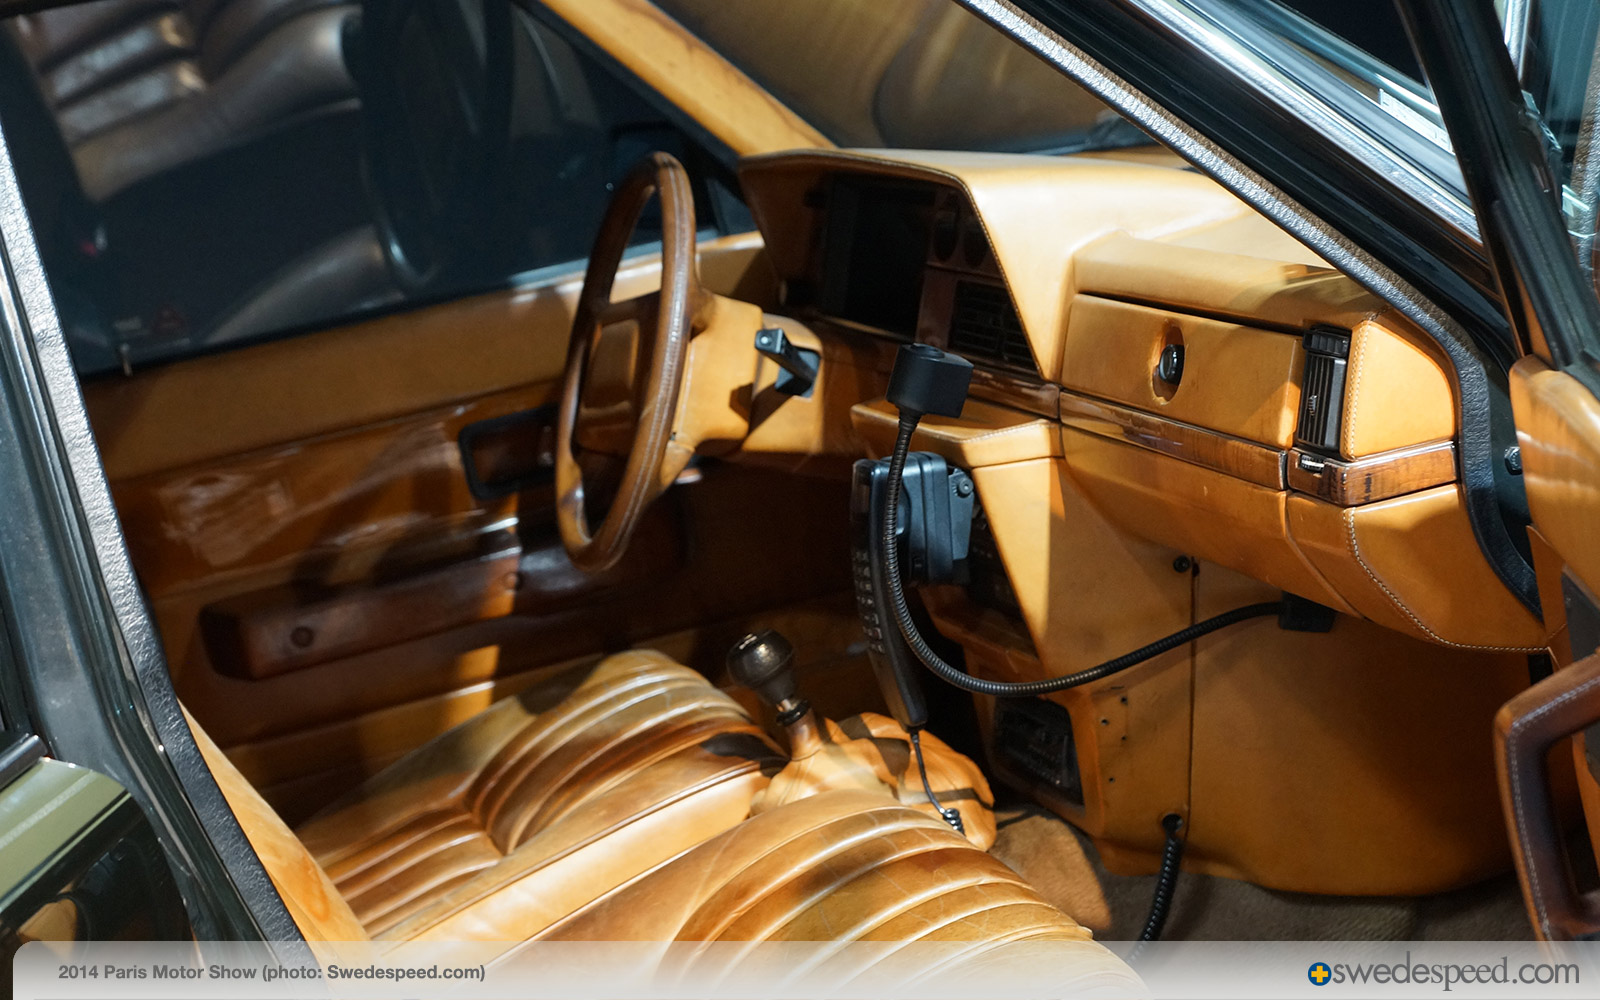 """Ex-Hermés 1984 Volvo 240 Turbo Wagon Part of """"Cars & Fashion"""" Display in Paris - Swedespeed"""